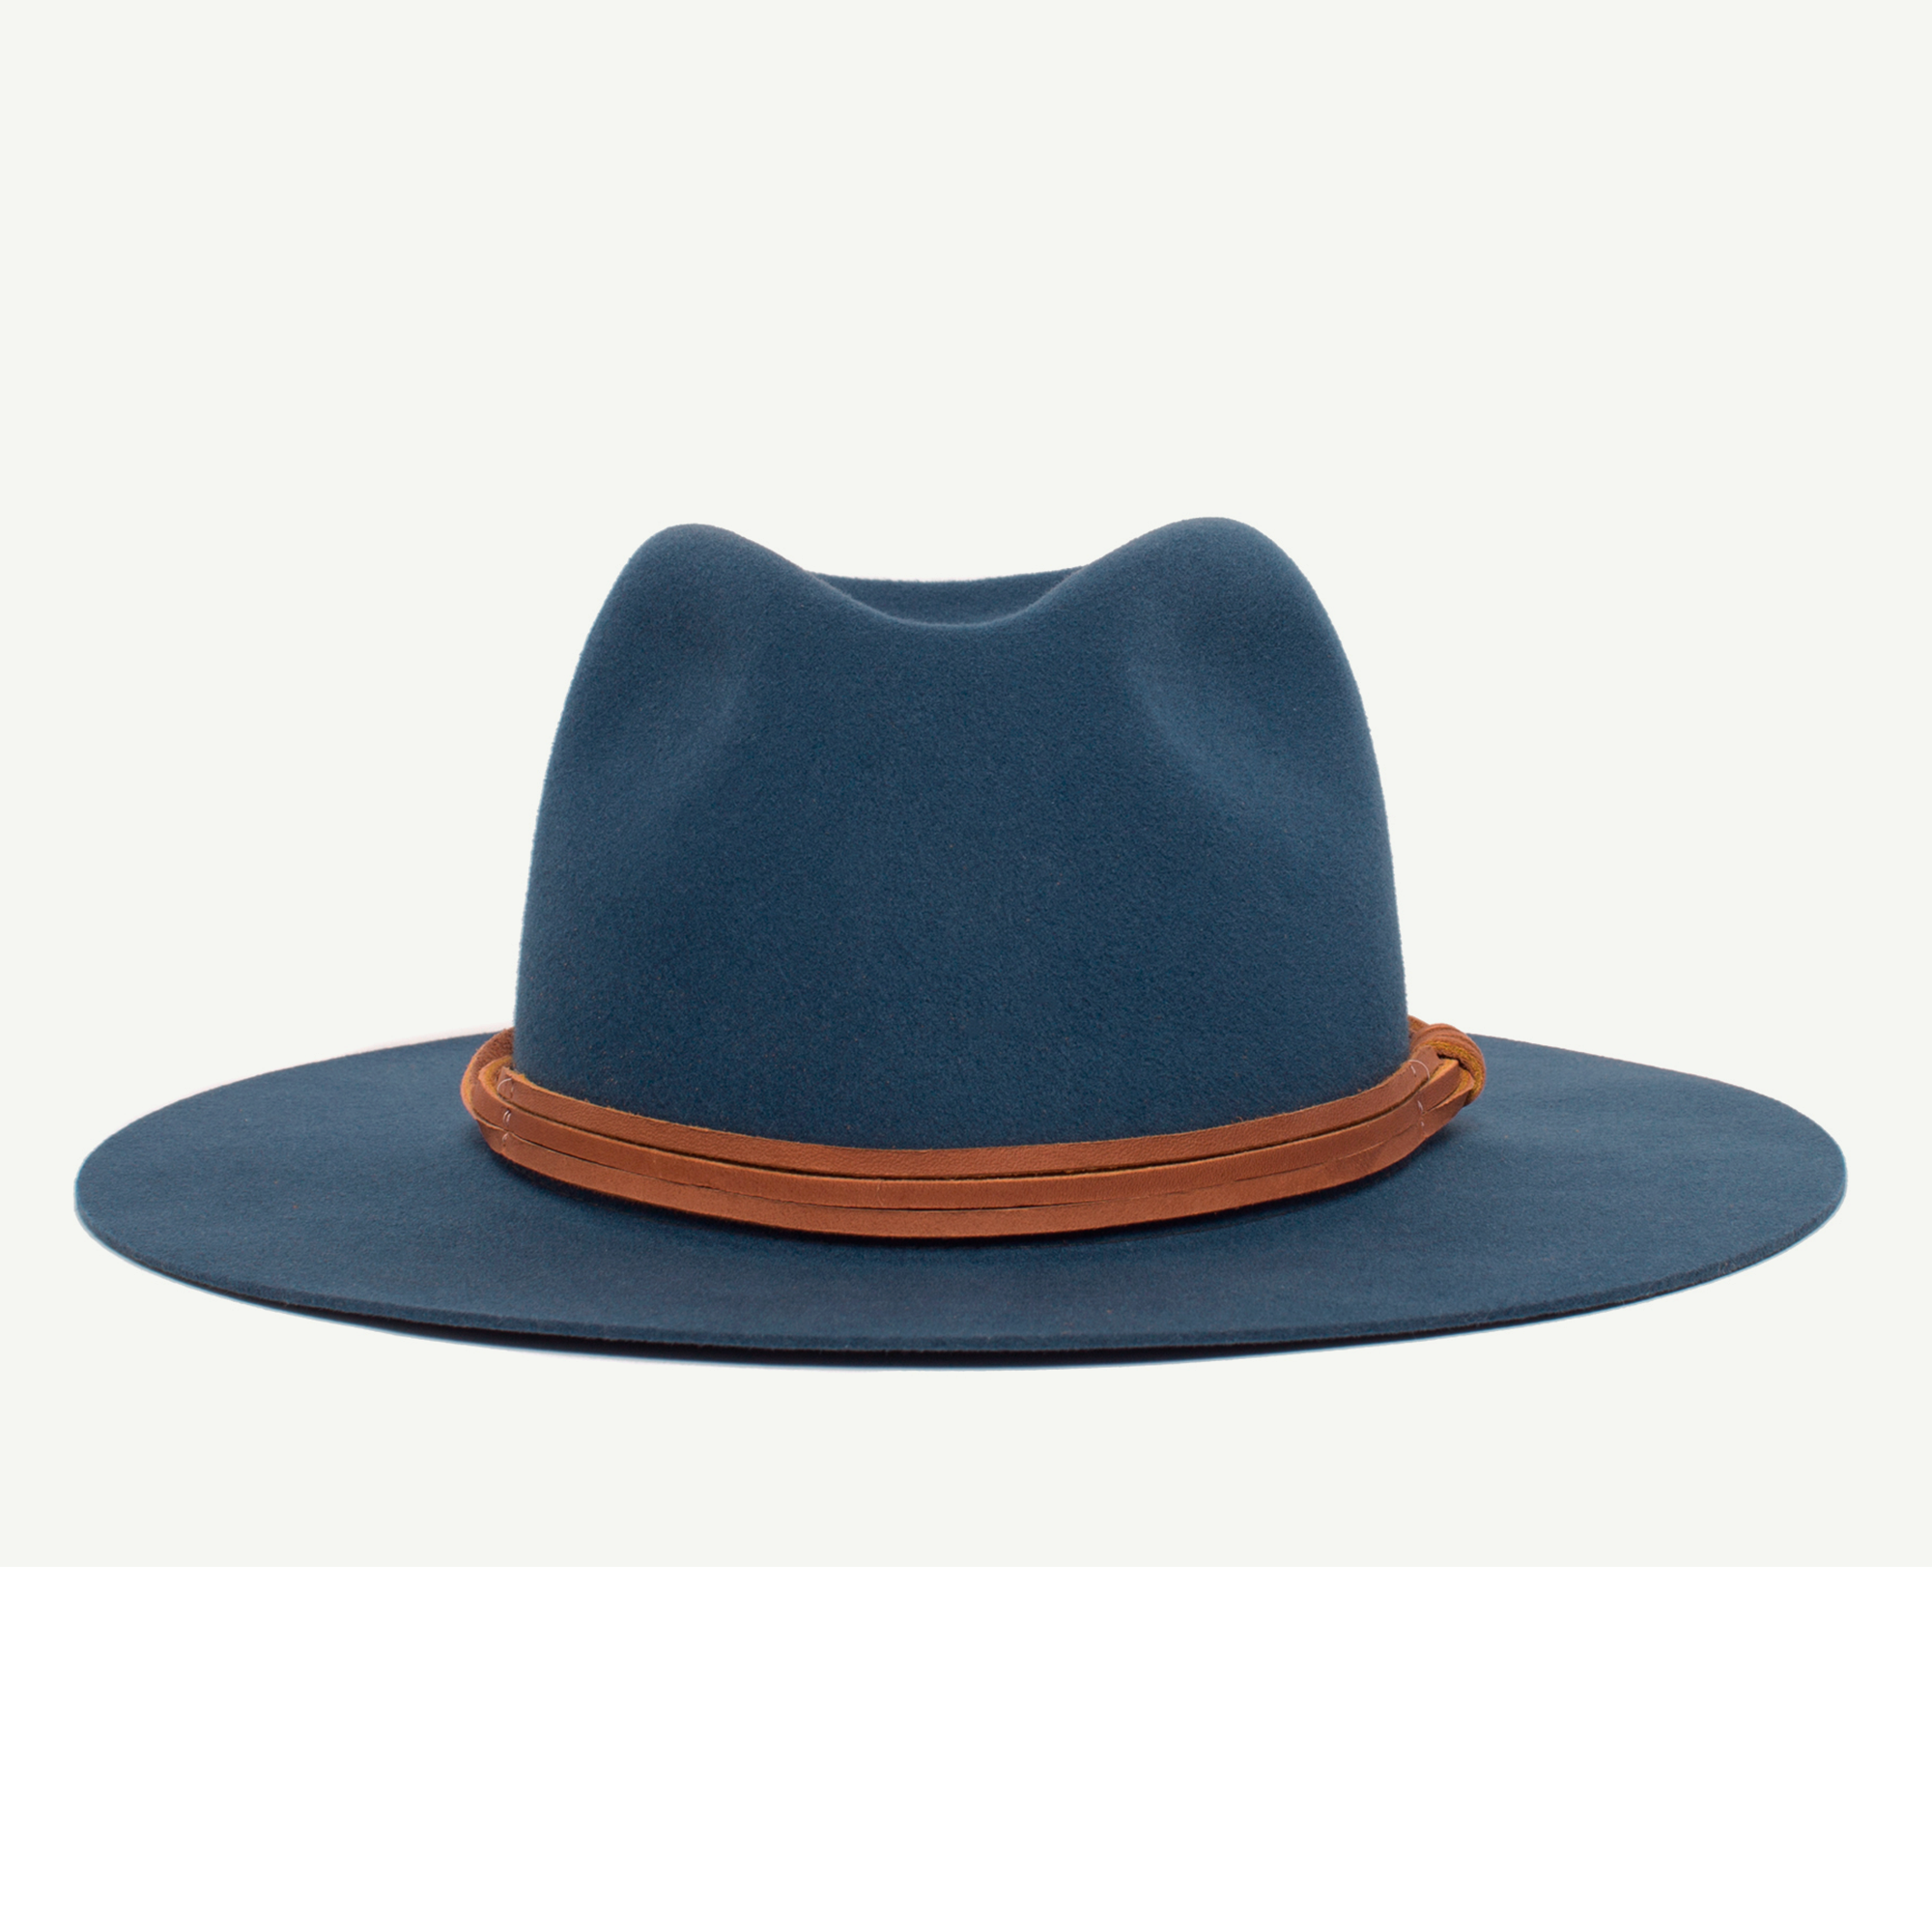 Discover ideas about Pork Pie Hat. available at  VillageHatShop 5e3689eb9ce